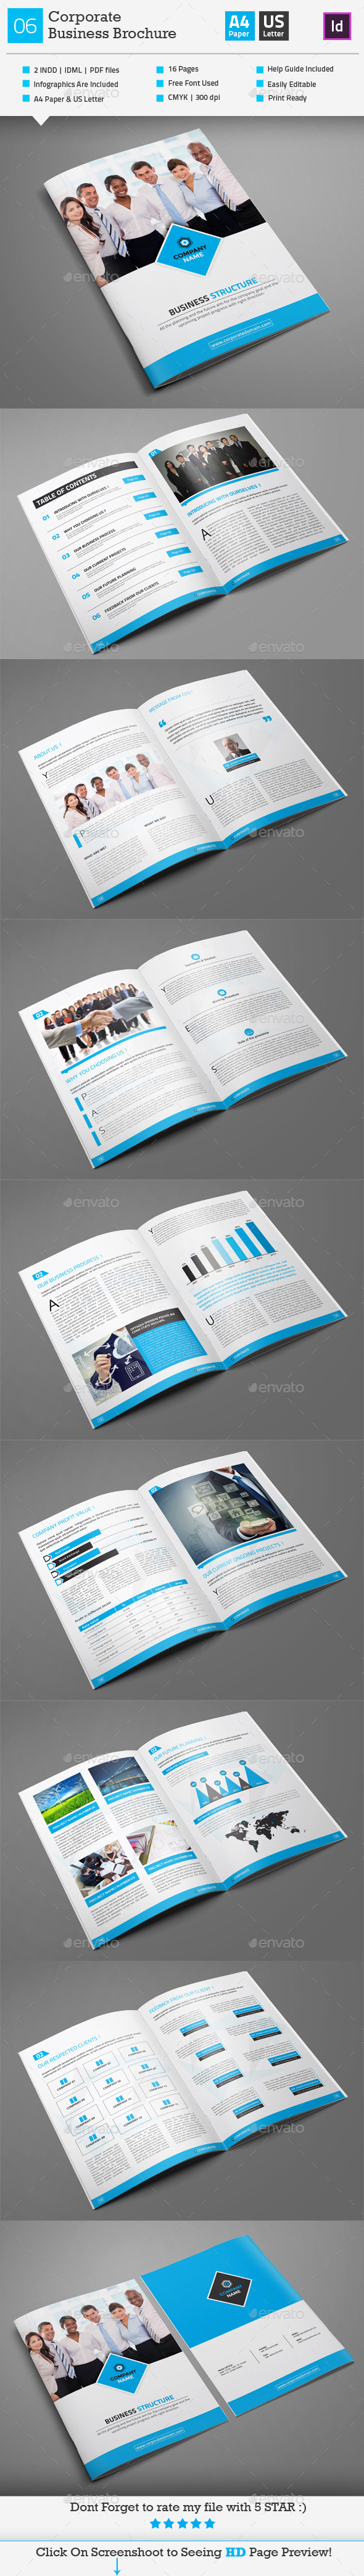 GraphicRiver Corporate Business Brochure 06 10154992